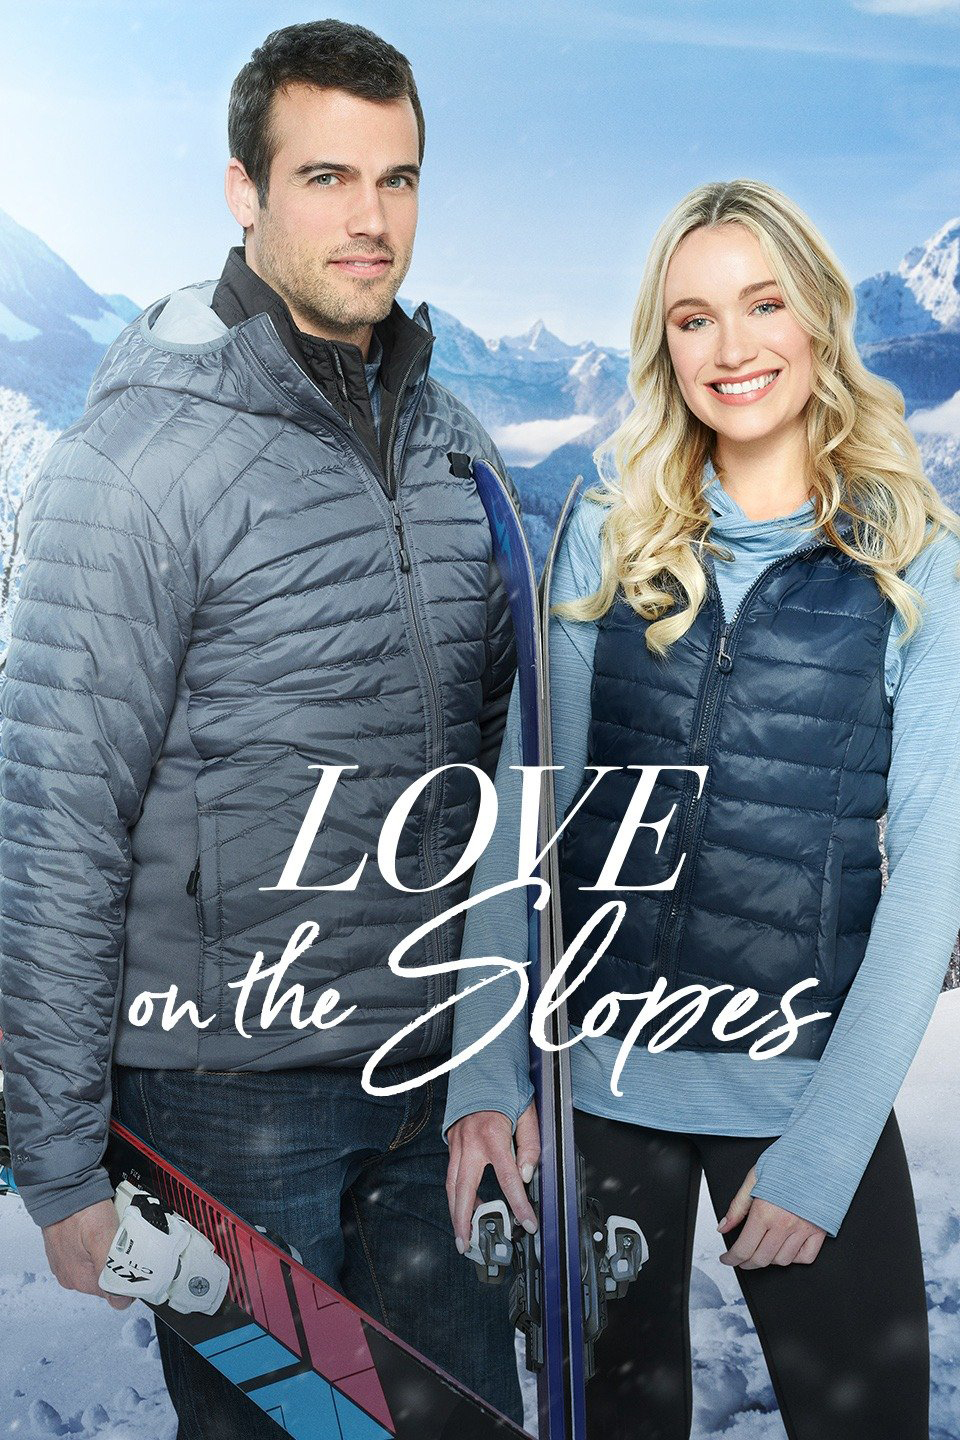 Movie Monday - Love on the Slopes